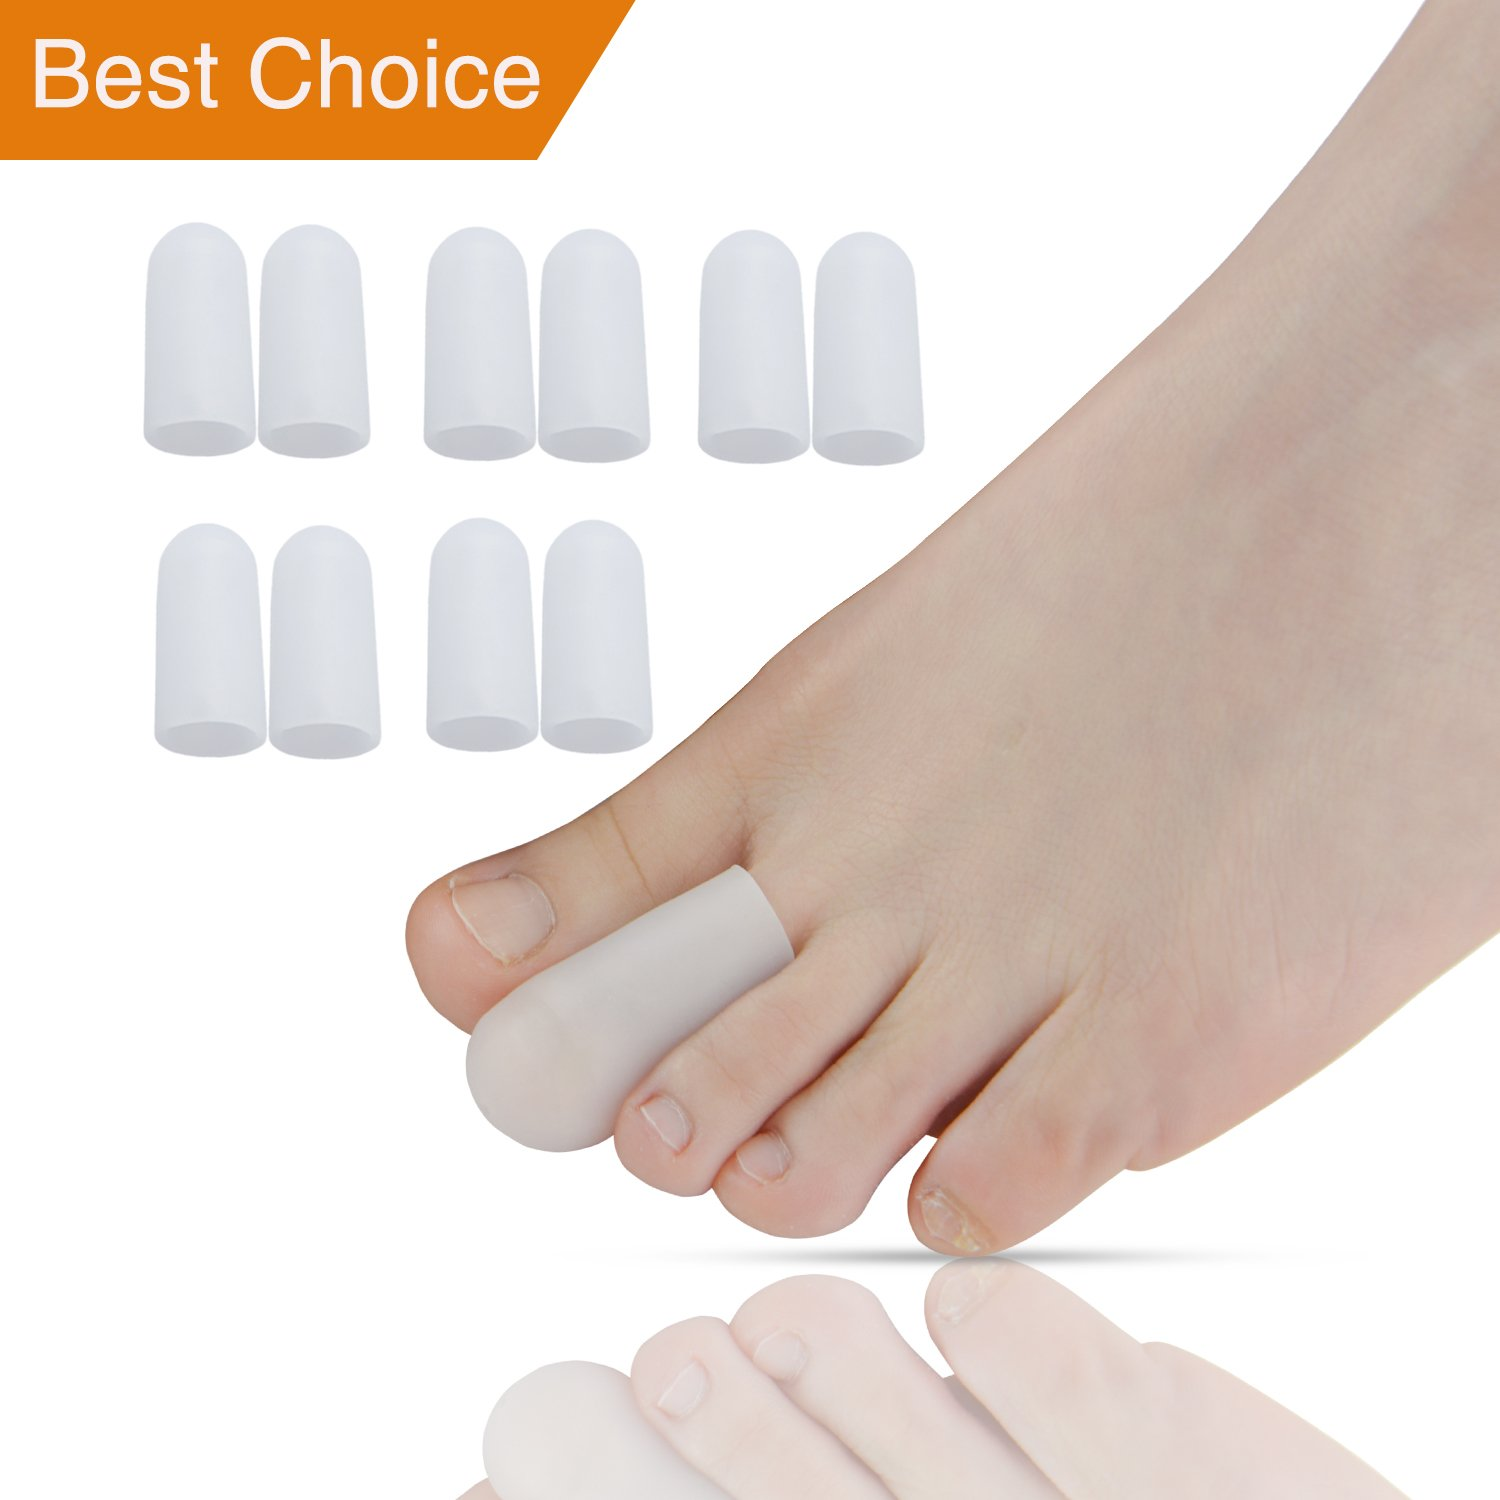 Sumifun 10 Pcs/Bag Toe Protector For Foot Corns Remover and Reduce Blisters & Callus, Silicone Gel Soft Finger Toe Caps Sleeves, Foot Bunion Pain Relief and Hammer Toes Foot Care Tools by Sumifun B01FJZLOVE